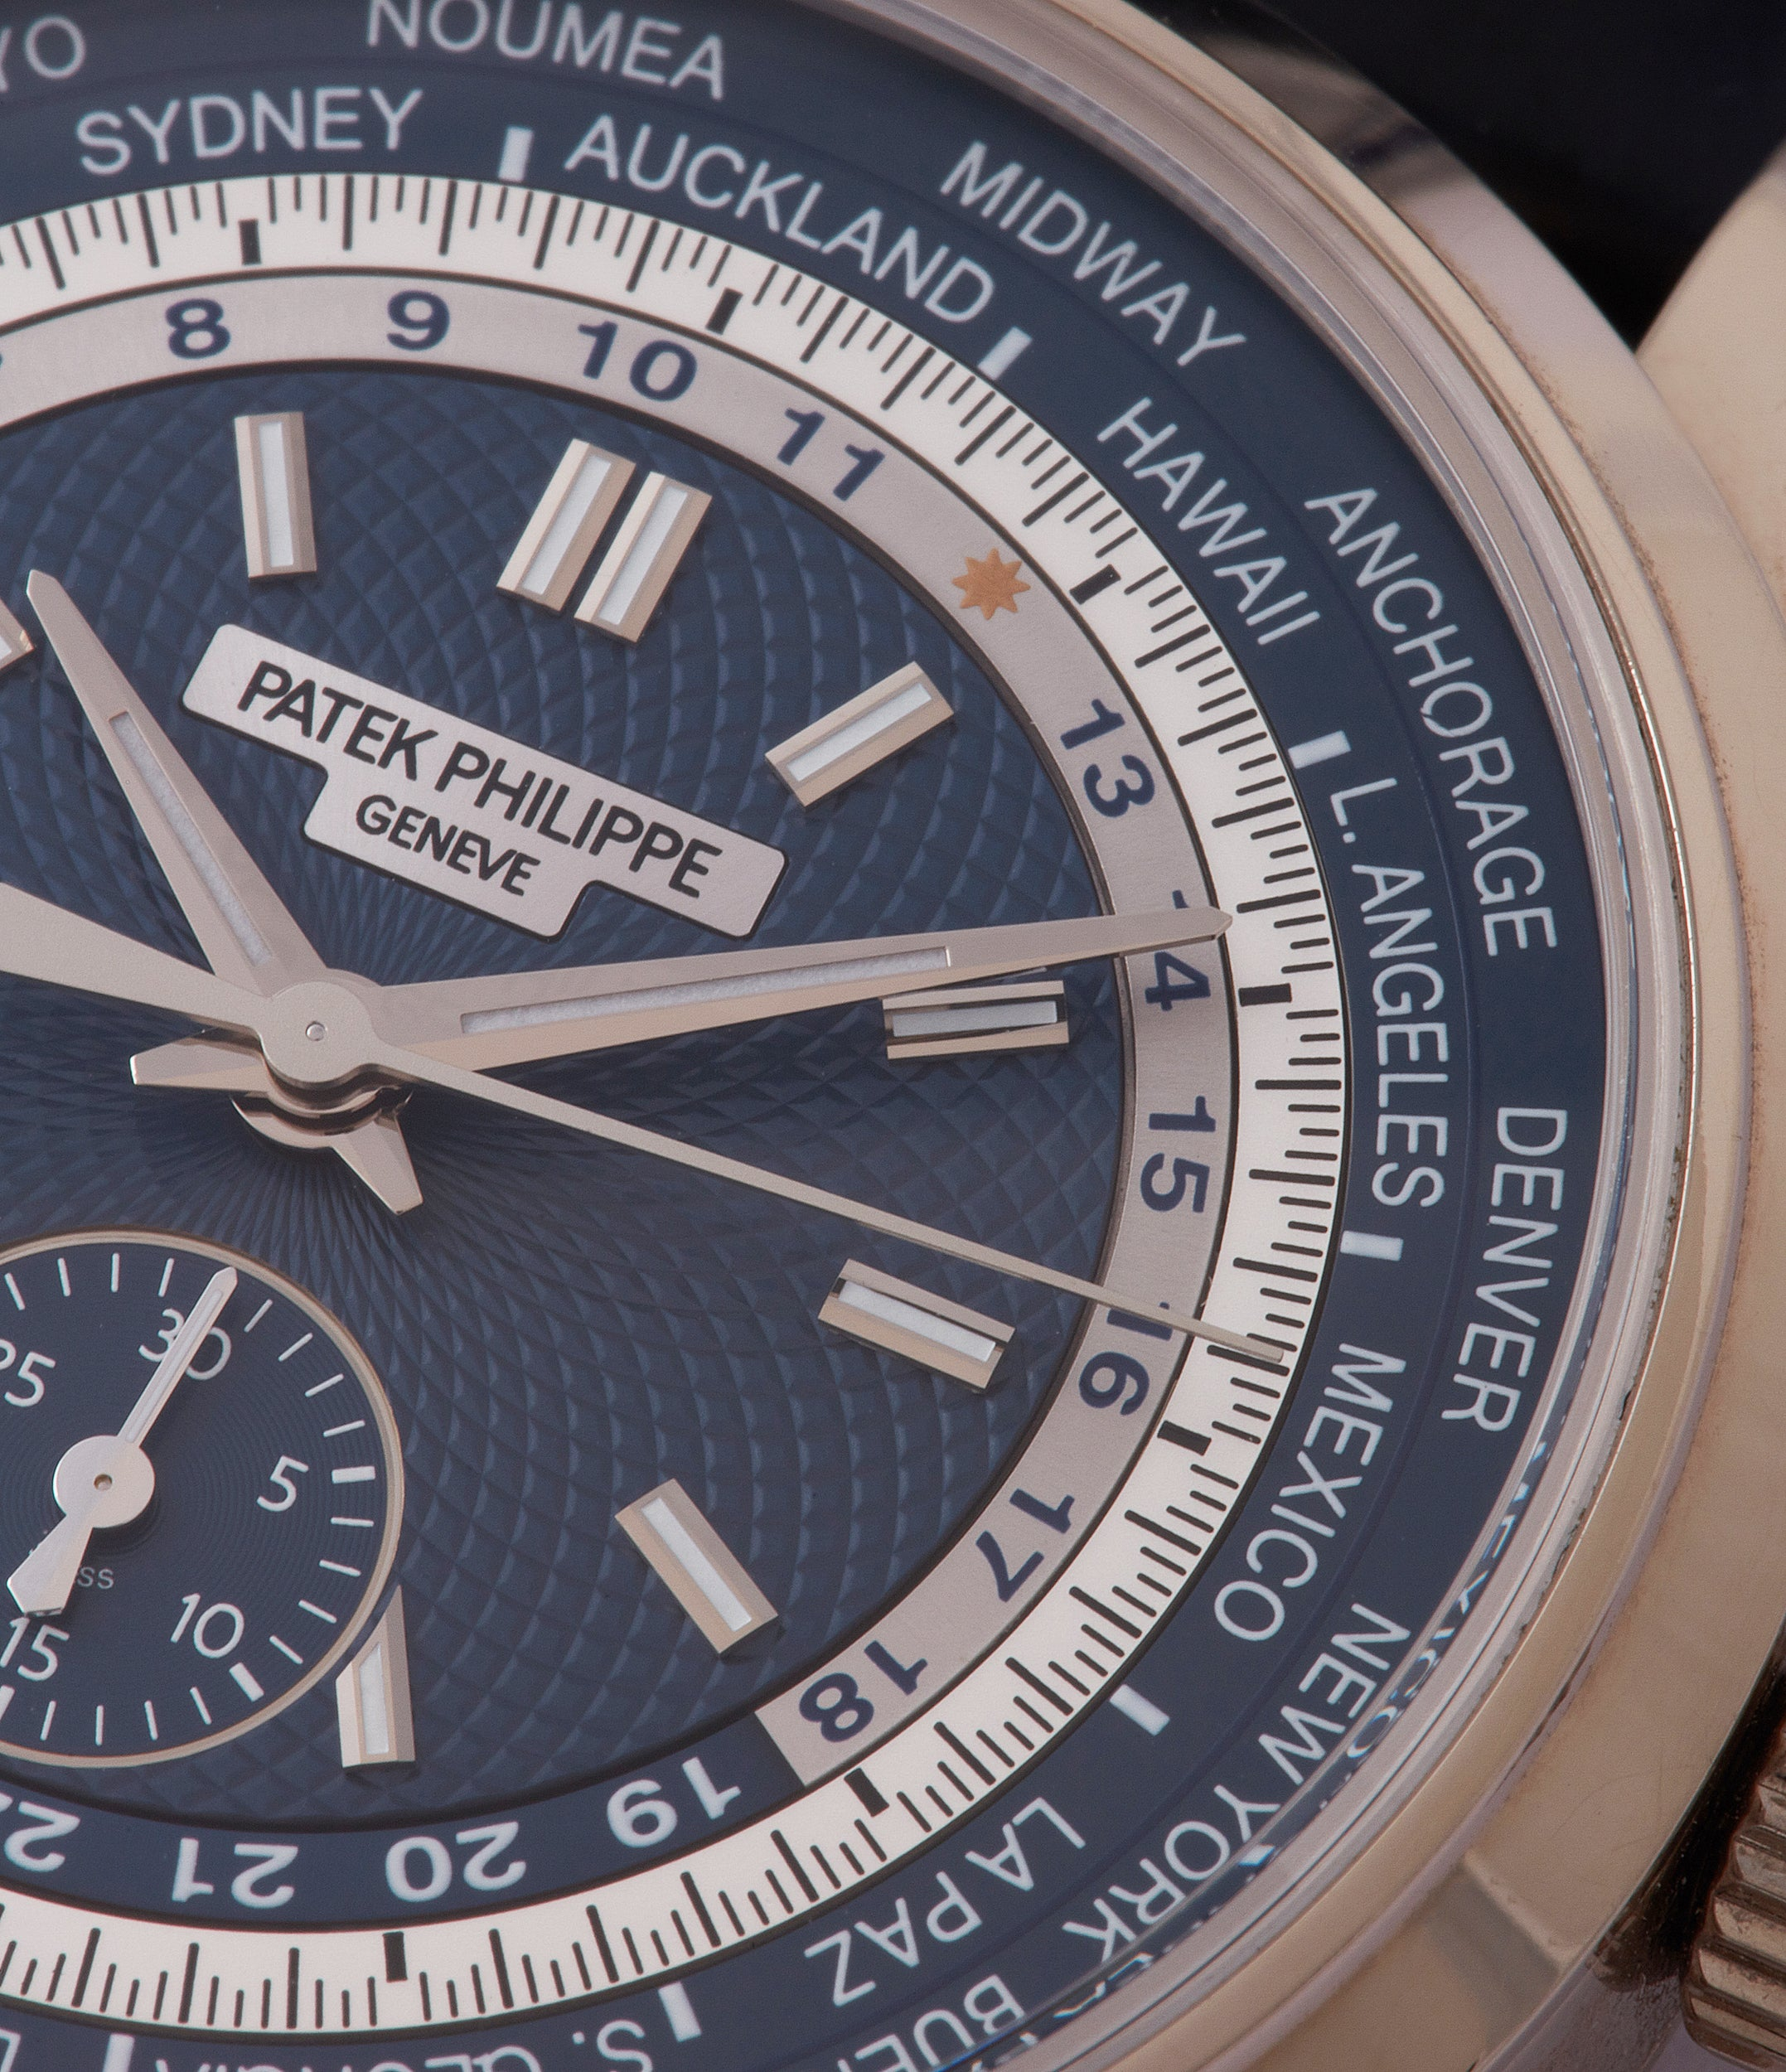 blue dial Patek Philippe World Time Chronograph 5930G-001 white gold watch blue dial for sale online at A Collected Man London